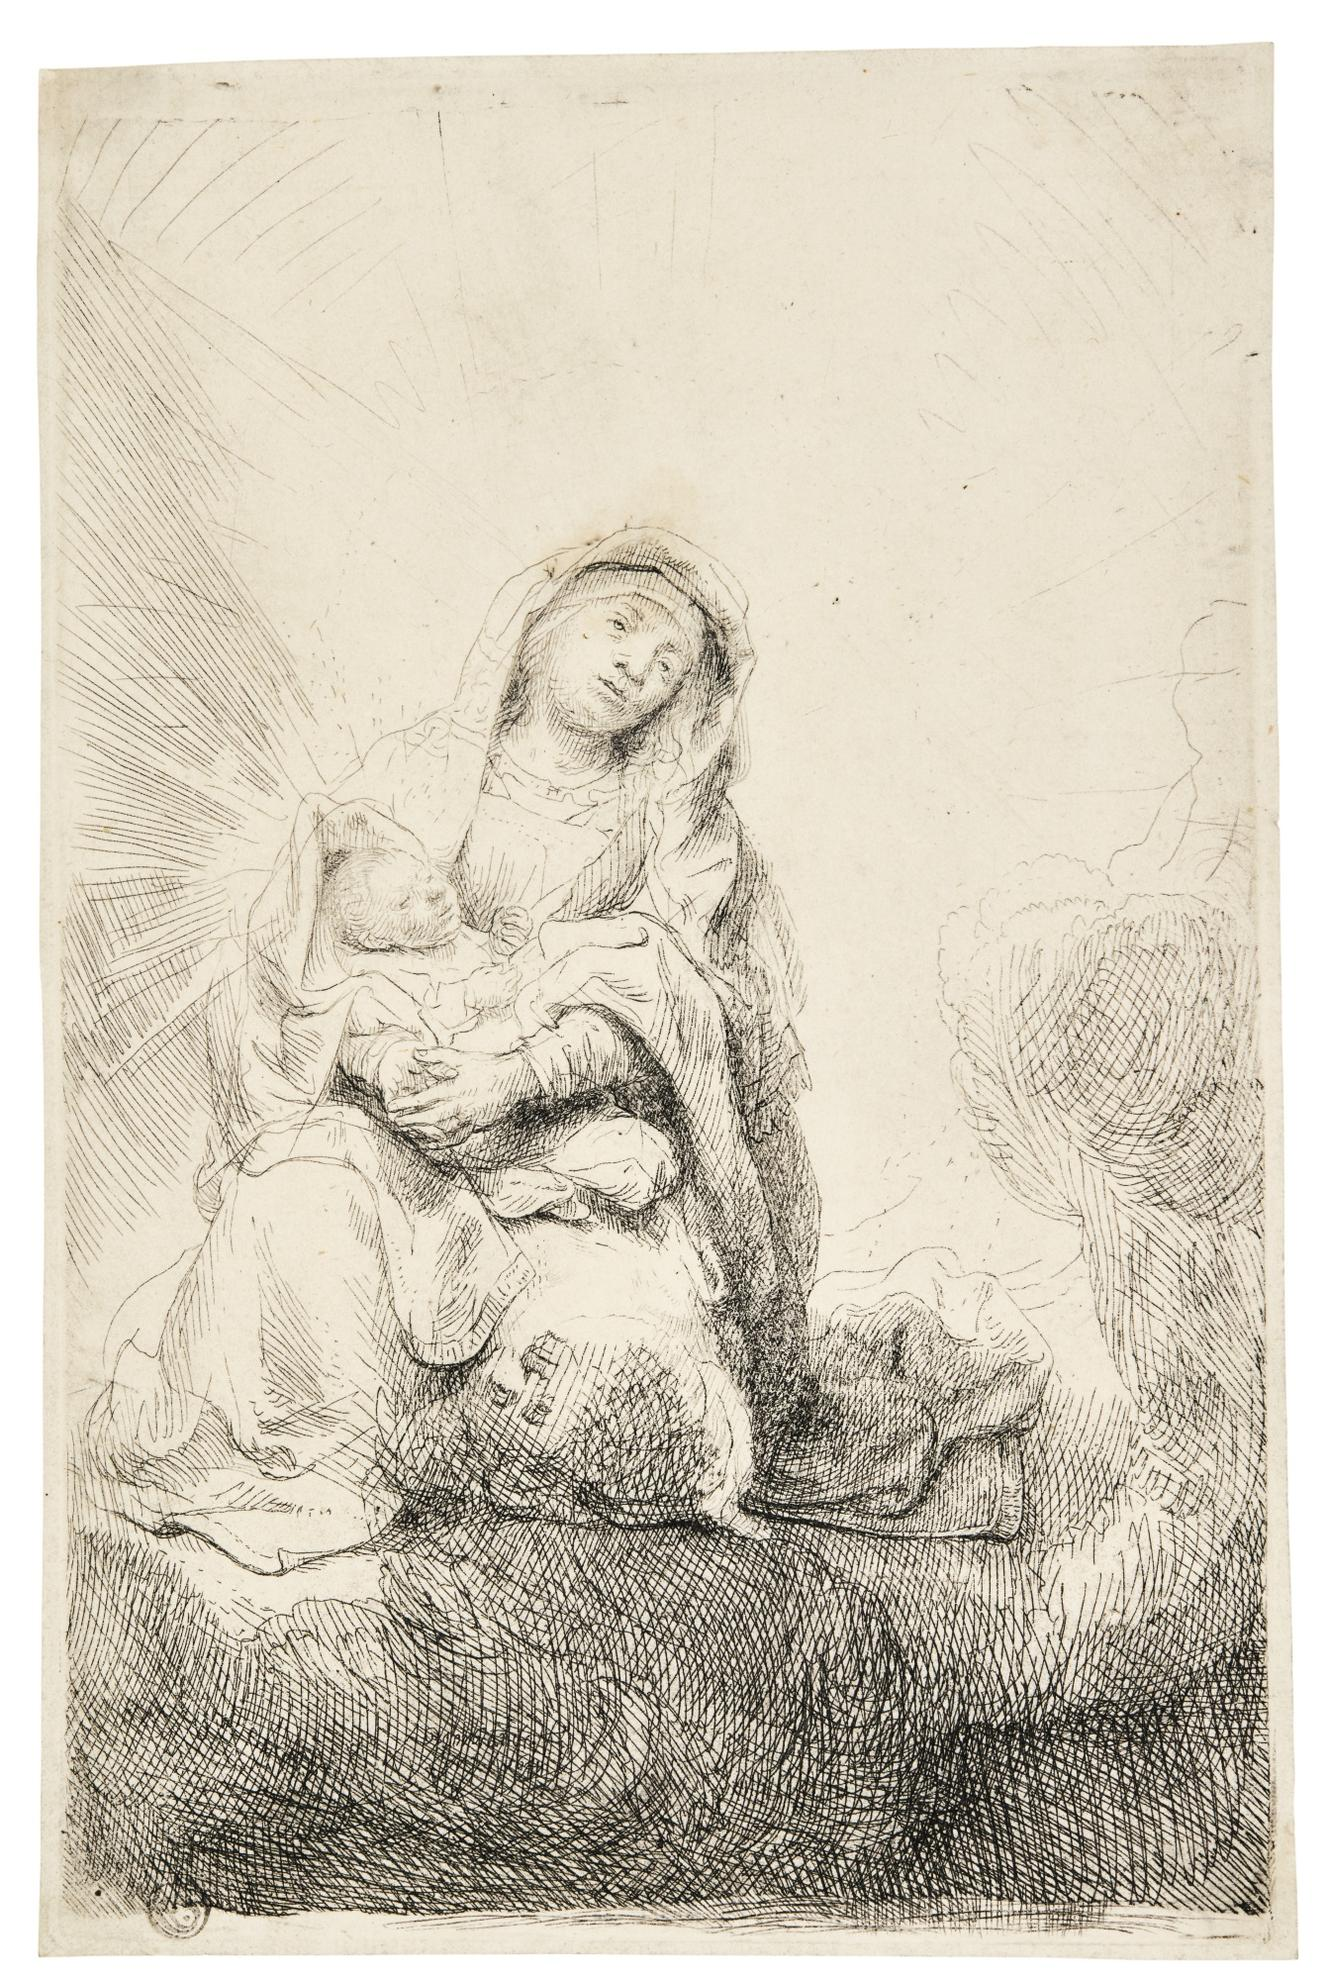 Rembrandt van Rijn-The Virgin And Child In The Clouds (B., Holl. 61; New Holl. 188; H. 186)-1641